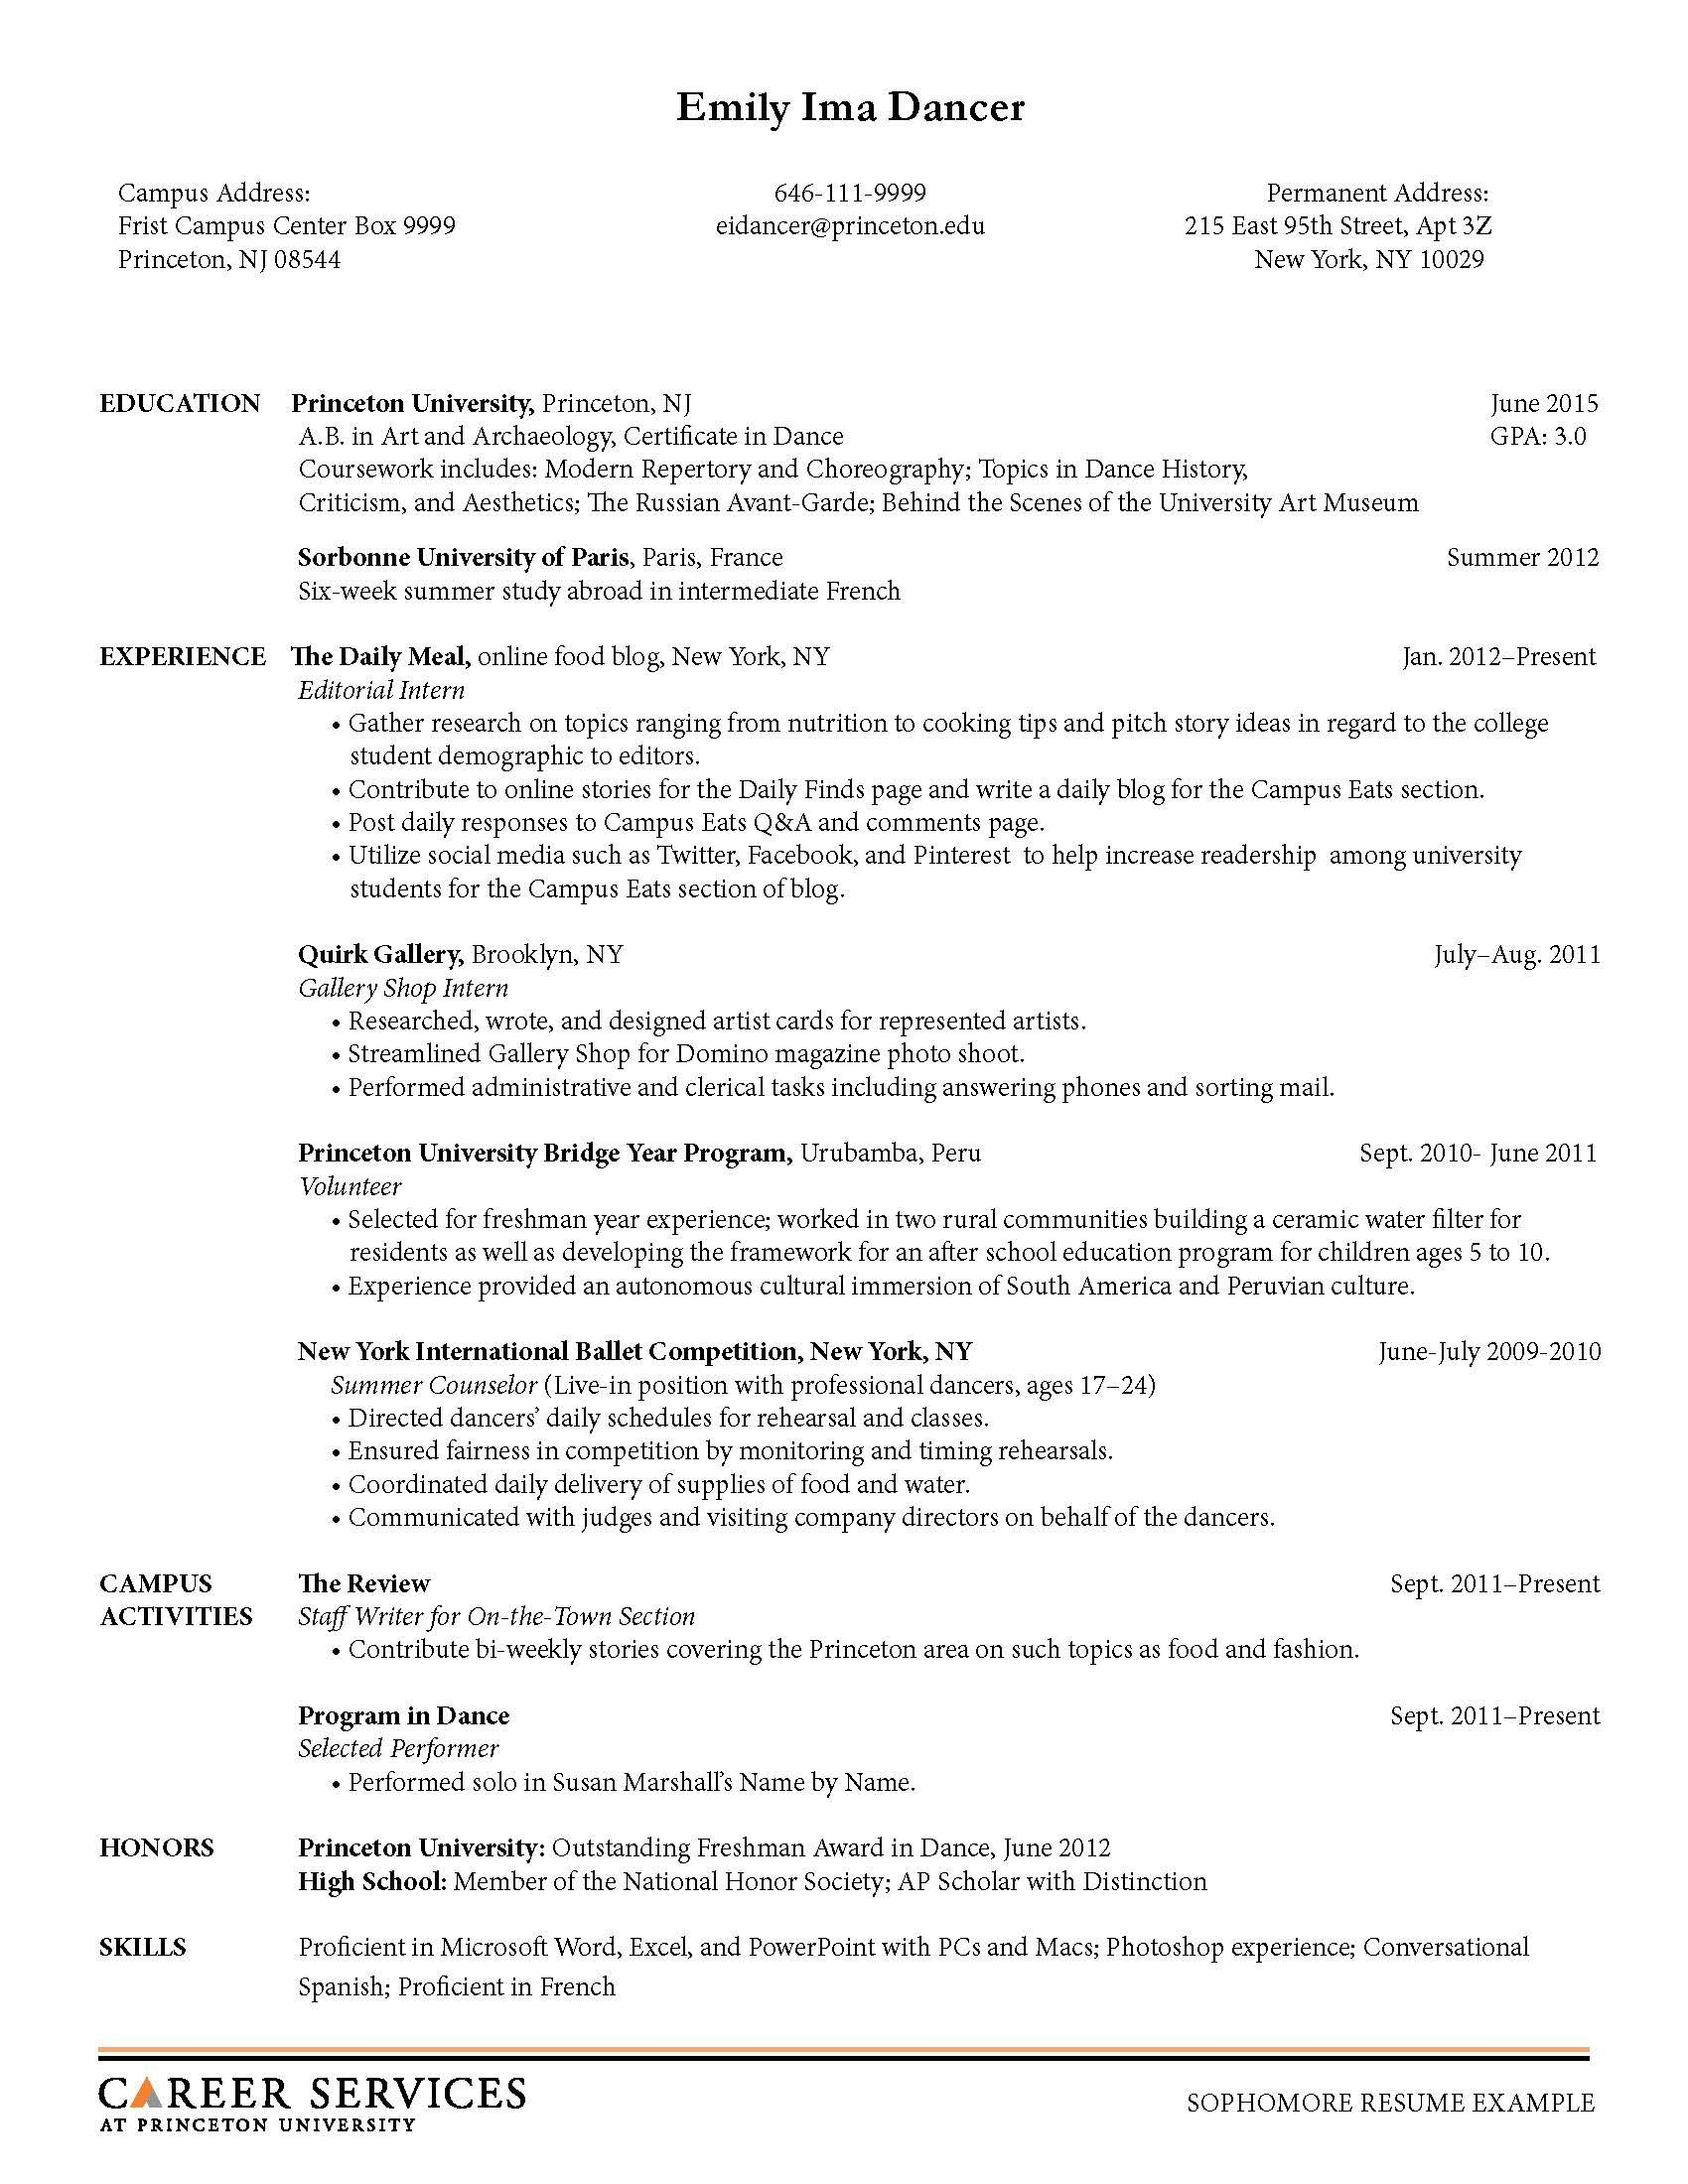 Opposenewapstandardsus  Pleasing Sample Resume Resume And Career On Pinterest With Fair Professional Objective For Resume Besides Experienced Resume Furthermore How To List References In A Resume With Easy On The Eye Best Resume Builder App Also Marketing Resume Templates In Addition Resume Samples For Students And Example Summary For Resume As Well As What To Include On Resume Additionally Scp Resume From Pinterestcom With Opposenewapstandardsus  Fair Sample Resume Resume And Career On Pinterest With Easy On The Eye Professional Objective For Resume Besides Experienced Resume Furthermore How To List References In A Resume And Pleasing Best Resume Builder App Also Marketing Resume Templates In Addition Resume Samples For Students From Pinterestcom